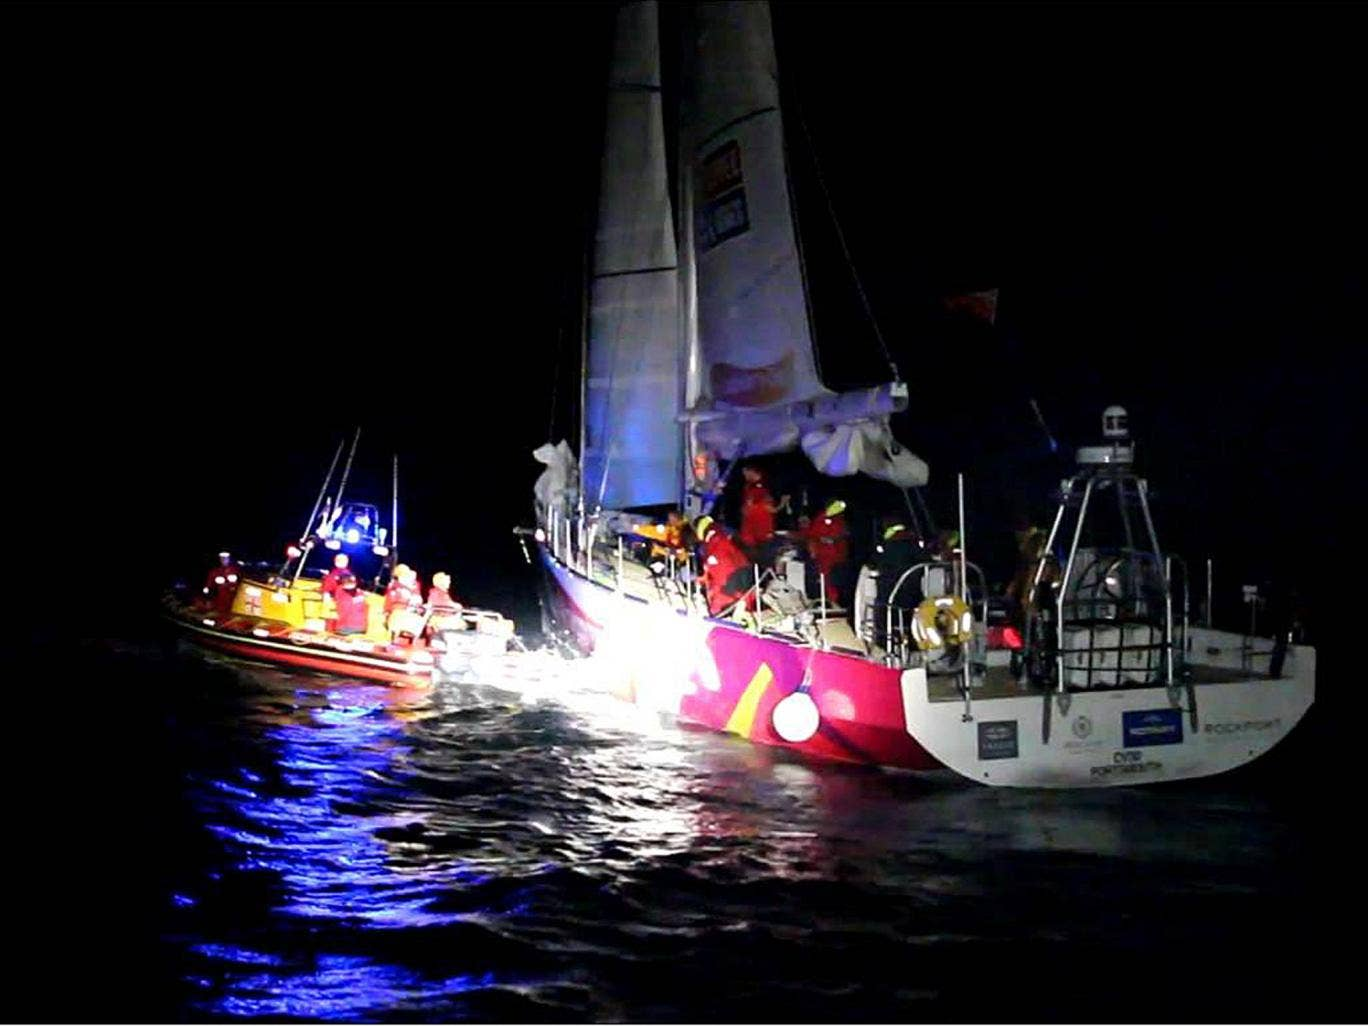 British woman Michelle Porter 37, from London, being transferred to a rescue craft because of an injury when her yacht, one of 12 taking part in the Clipper round-the-world race, was hit by a 'monumental' wave off the coast of South Africa and who has bee